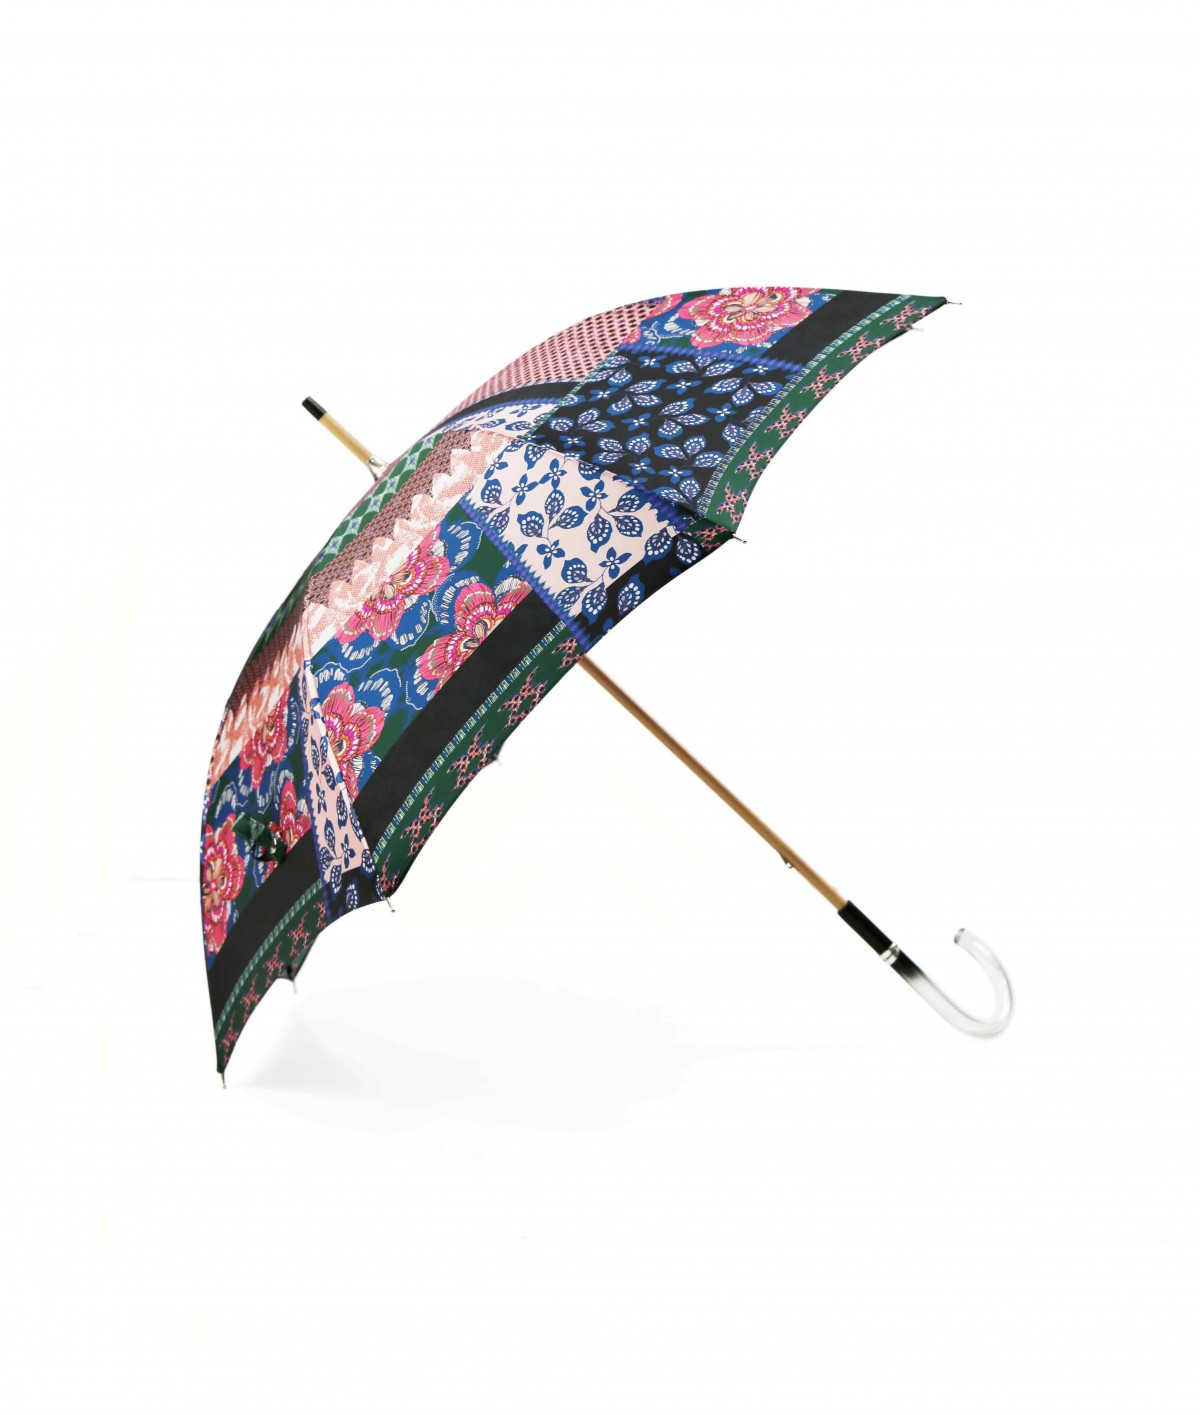 → Fancy Printed Satin Umbrella - Long Manual N°6 - Made in France by Maison Pierre Vaux French Umbrella Manufacturer